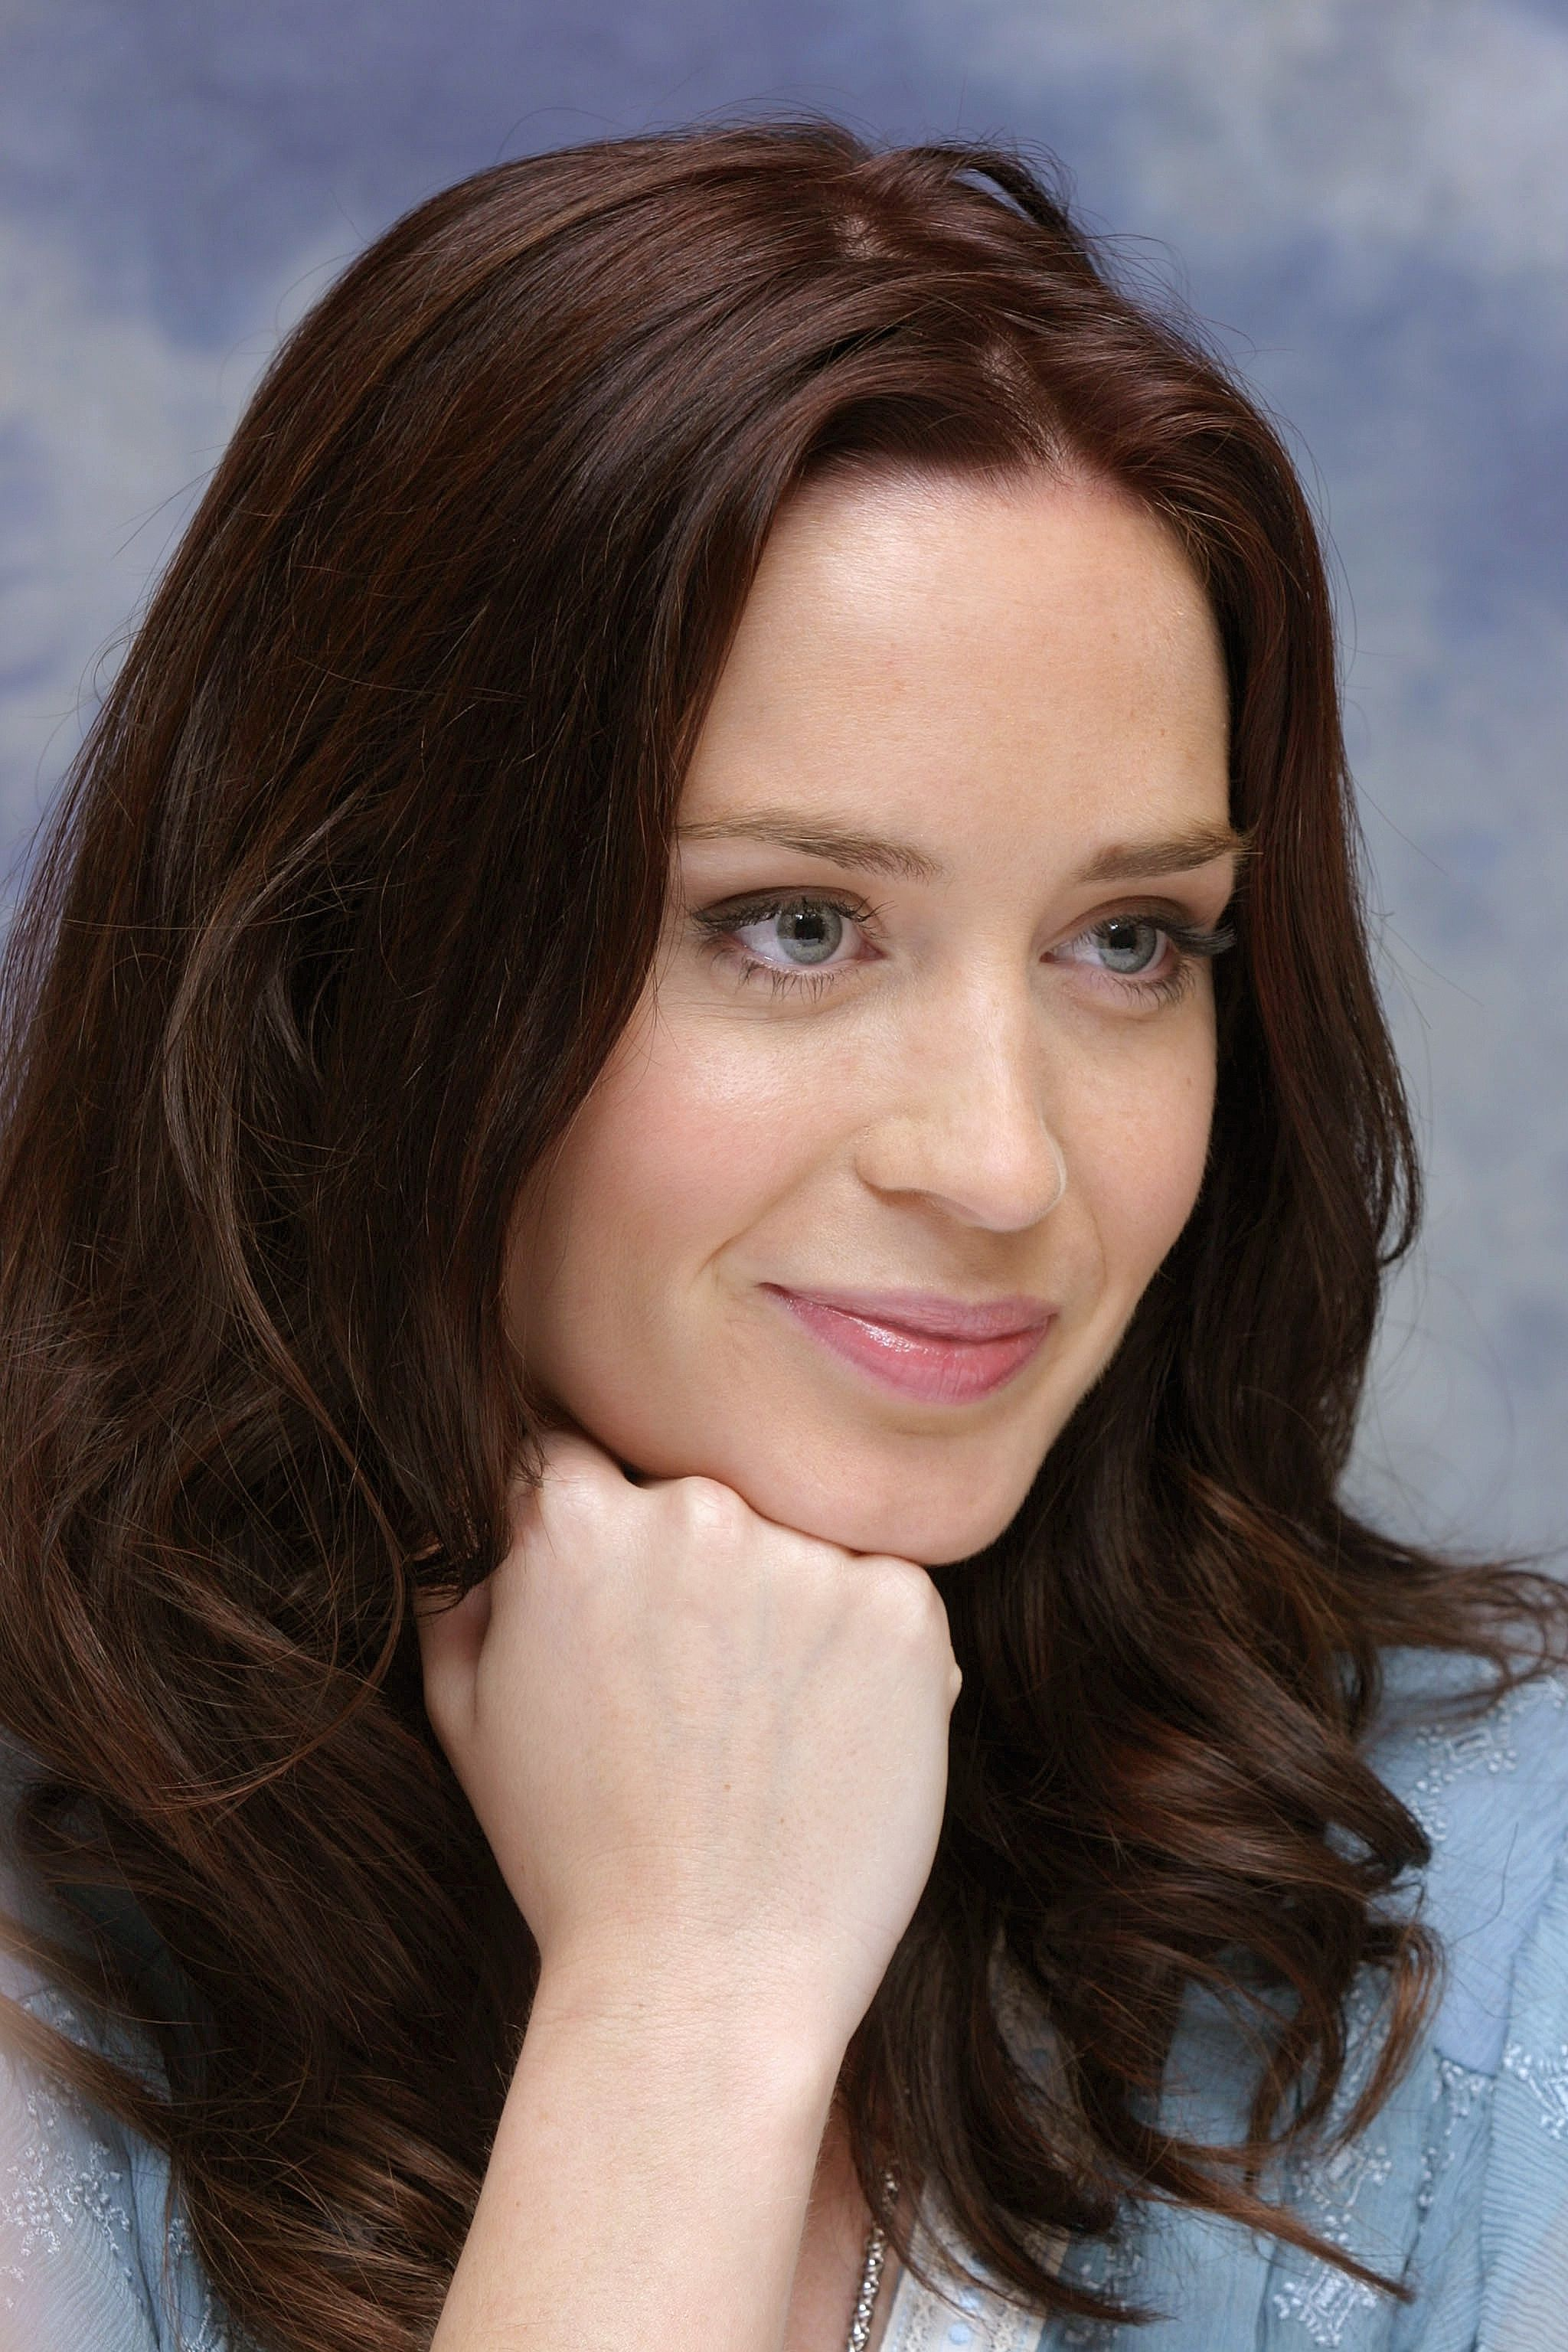 Communication on this topic: Javeria Abbasi, emily-blunt-born-1983-naturalized-american-citizen/